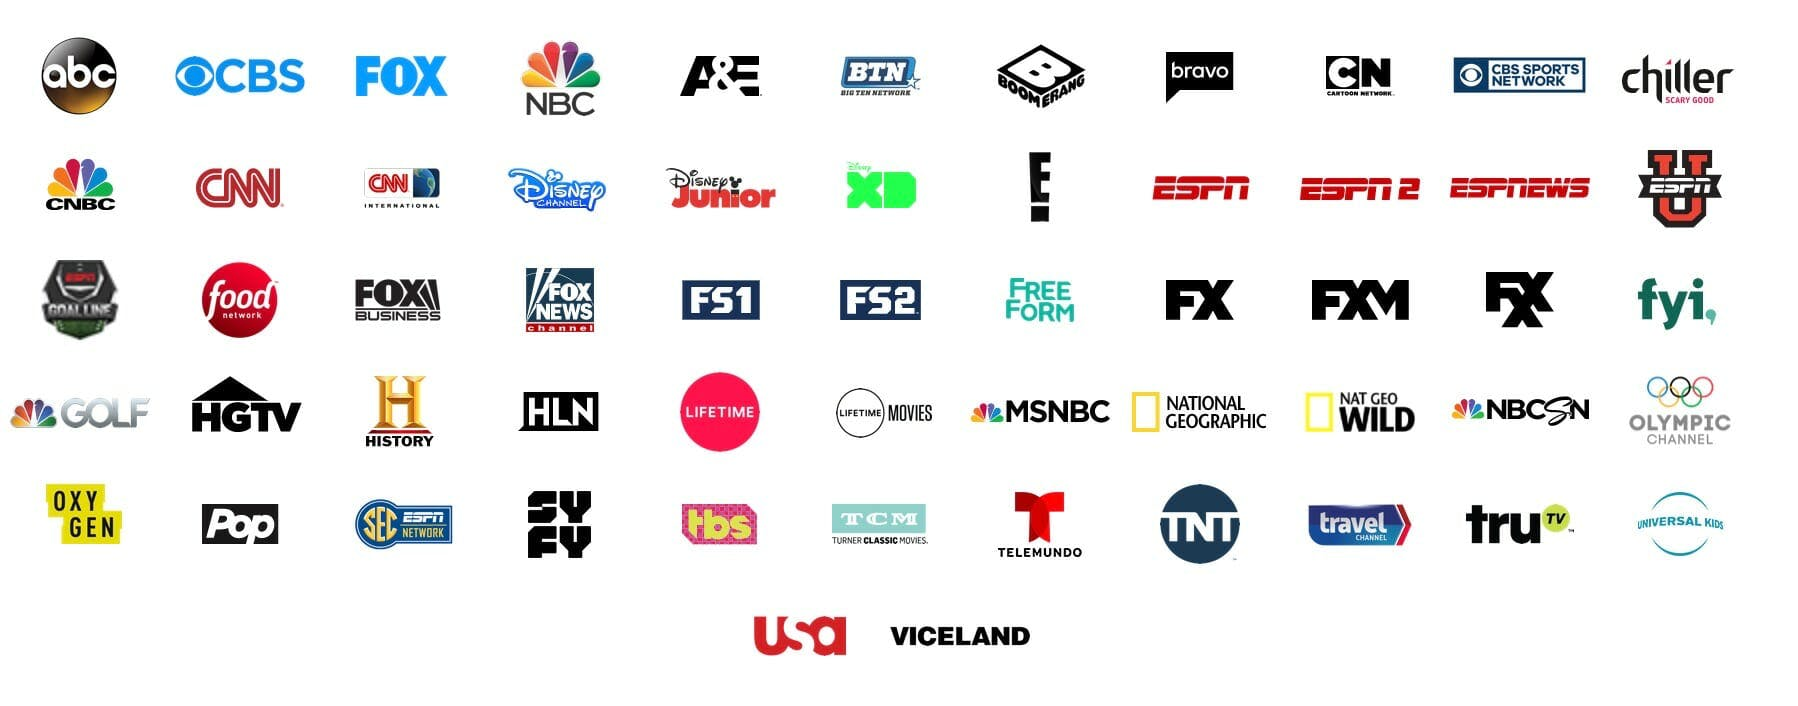 live streaming tv : hulu with live tv channels